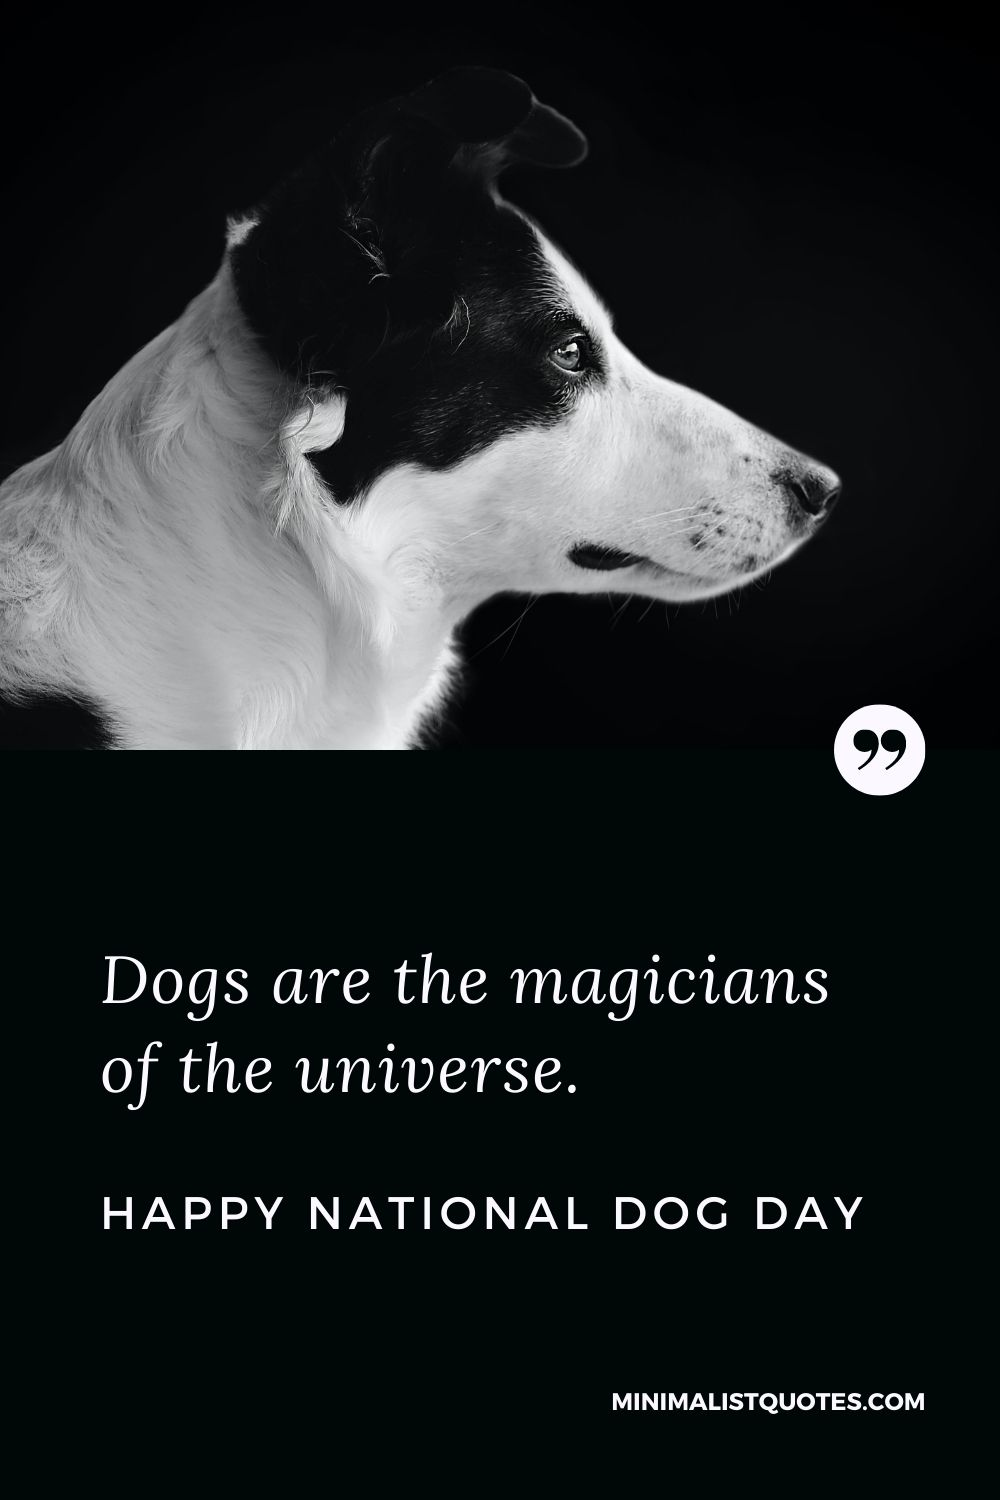 National Dog Day Quote, Wish & Message With Image: Dogs are the magicians of the universe. Happy National Dog Day!